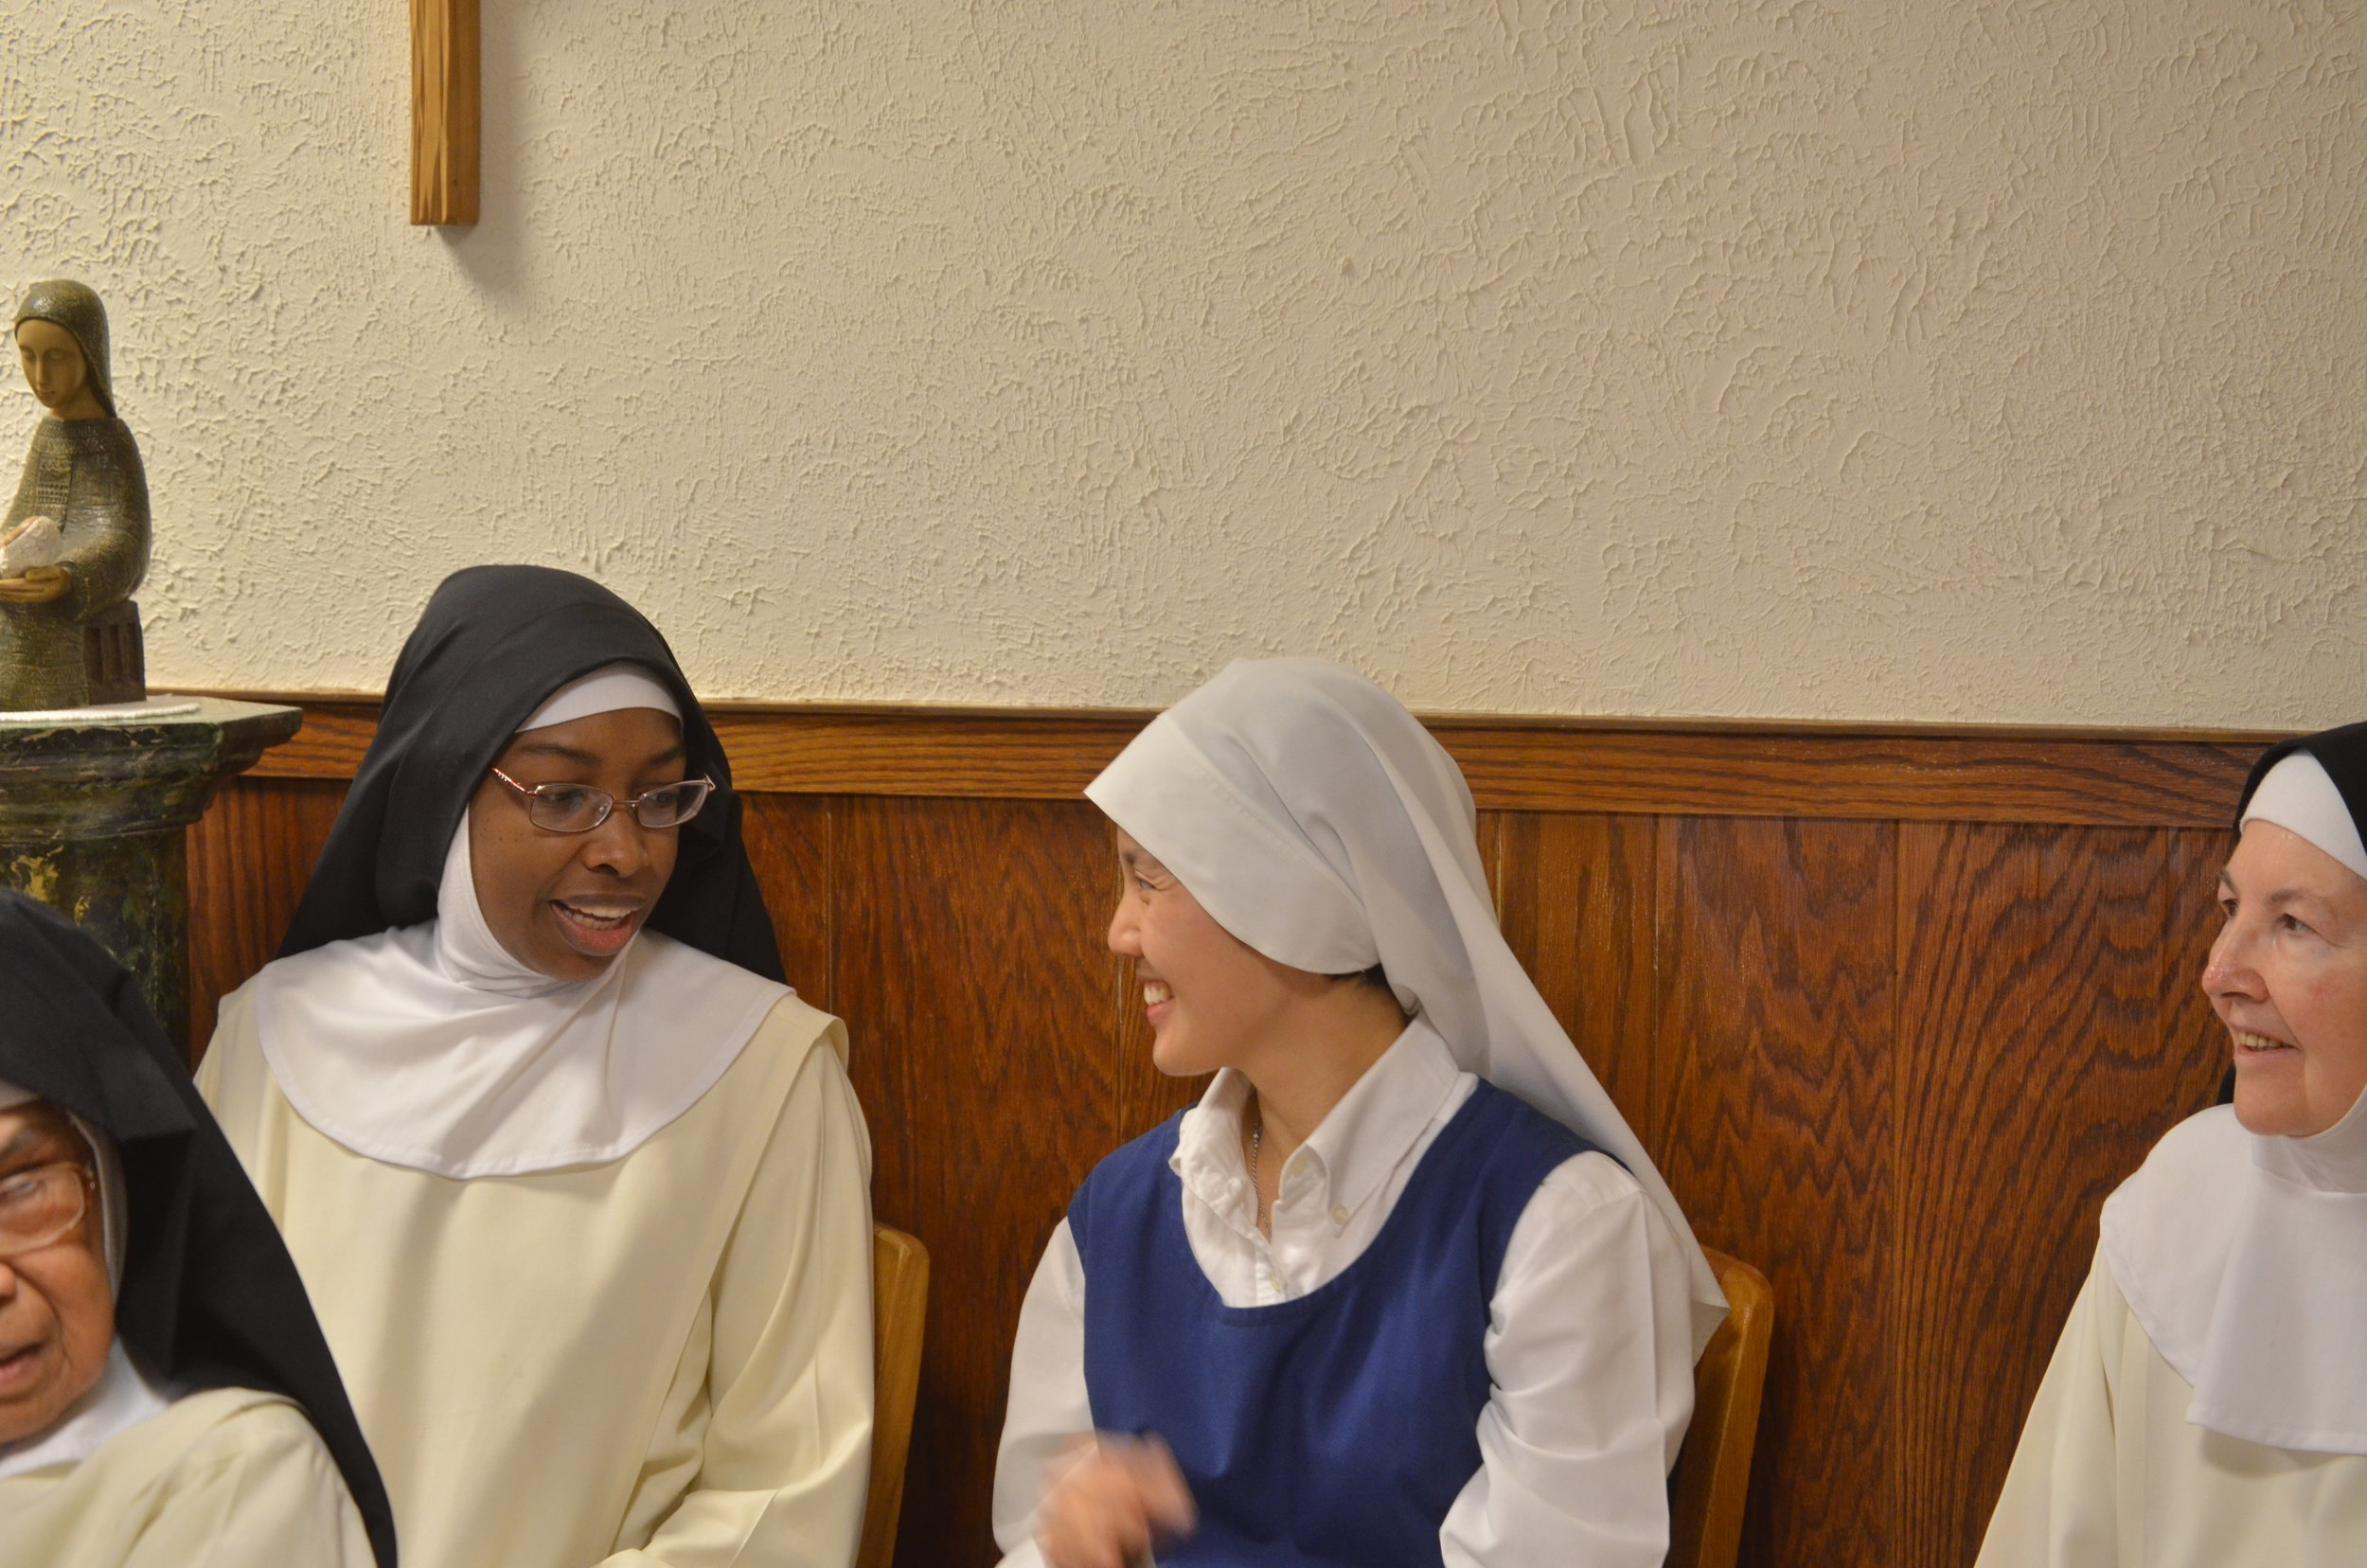 Sr. Mary Jacinta & Sr. Clare enjoy a short conversation waiting for the brothers